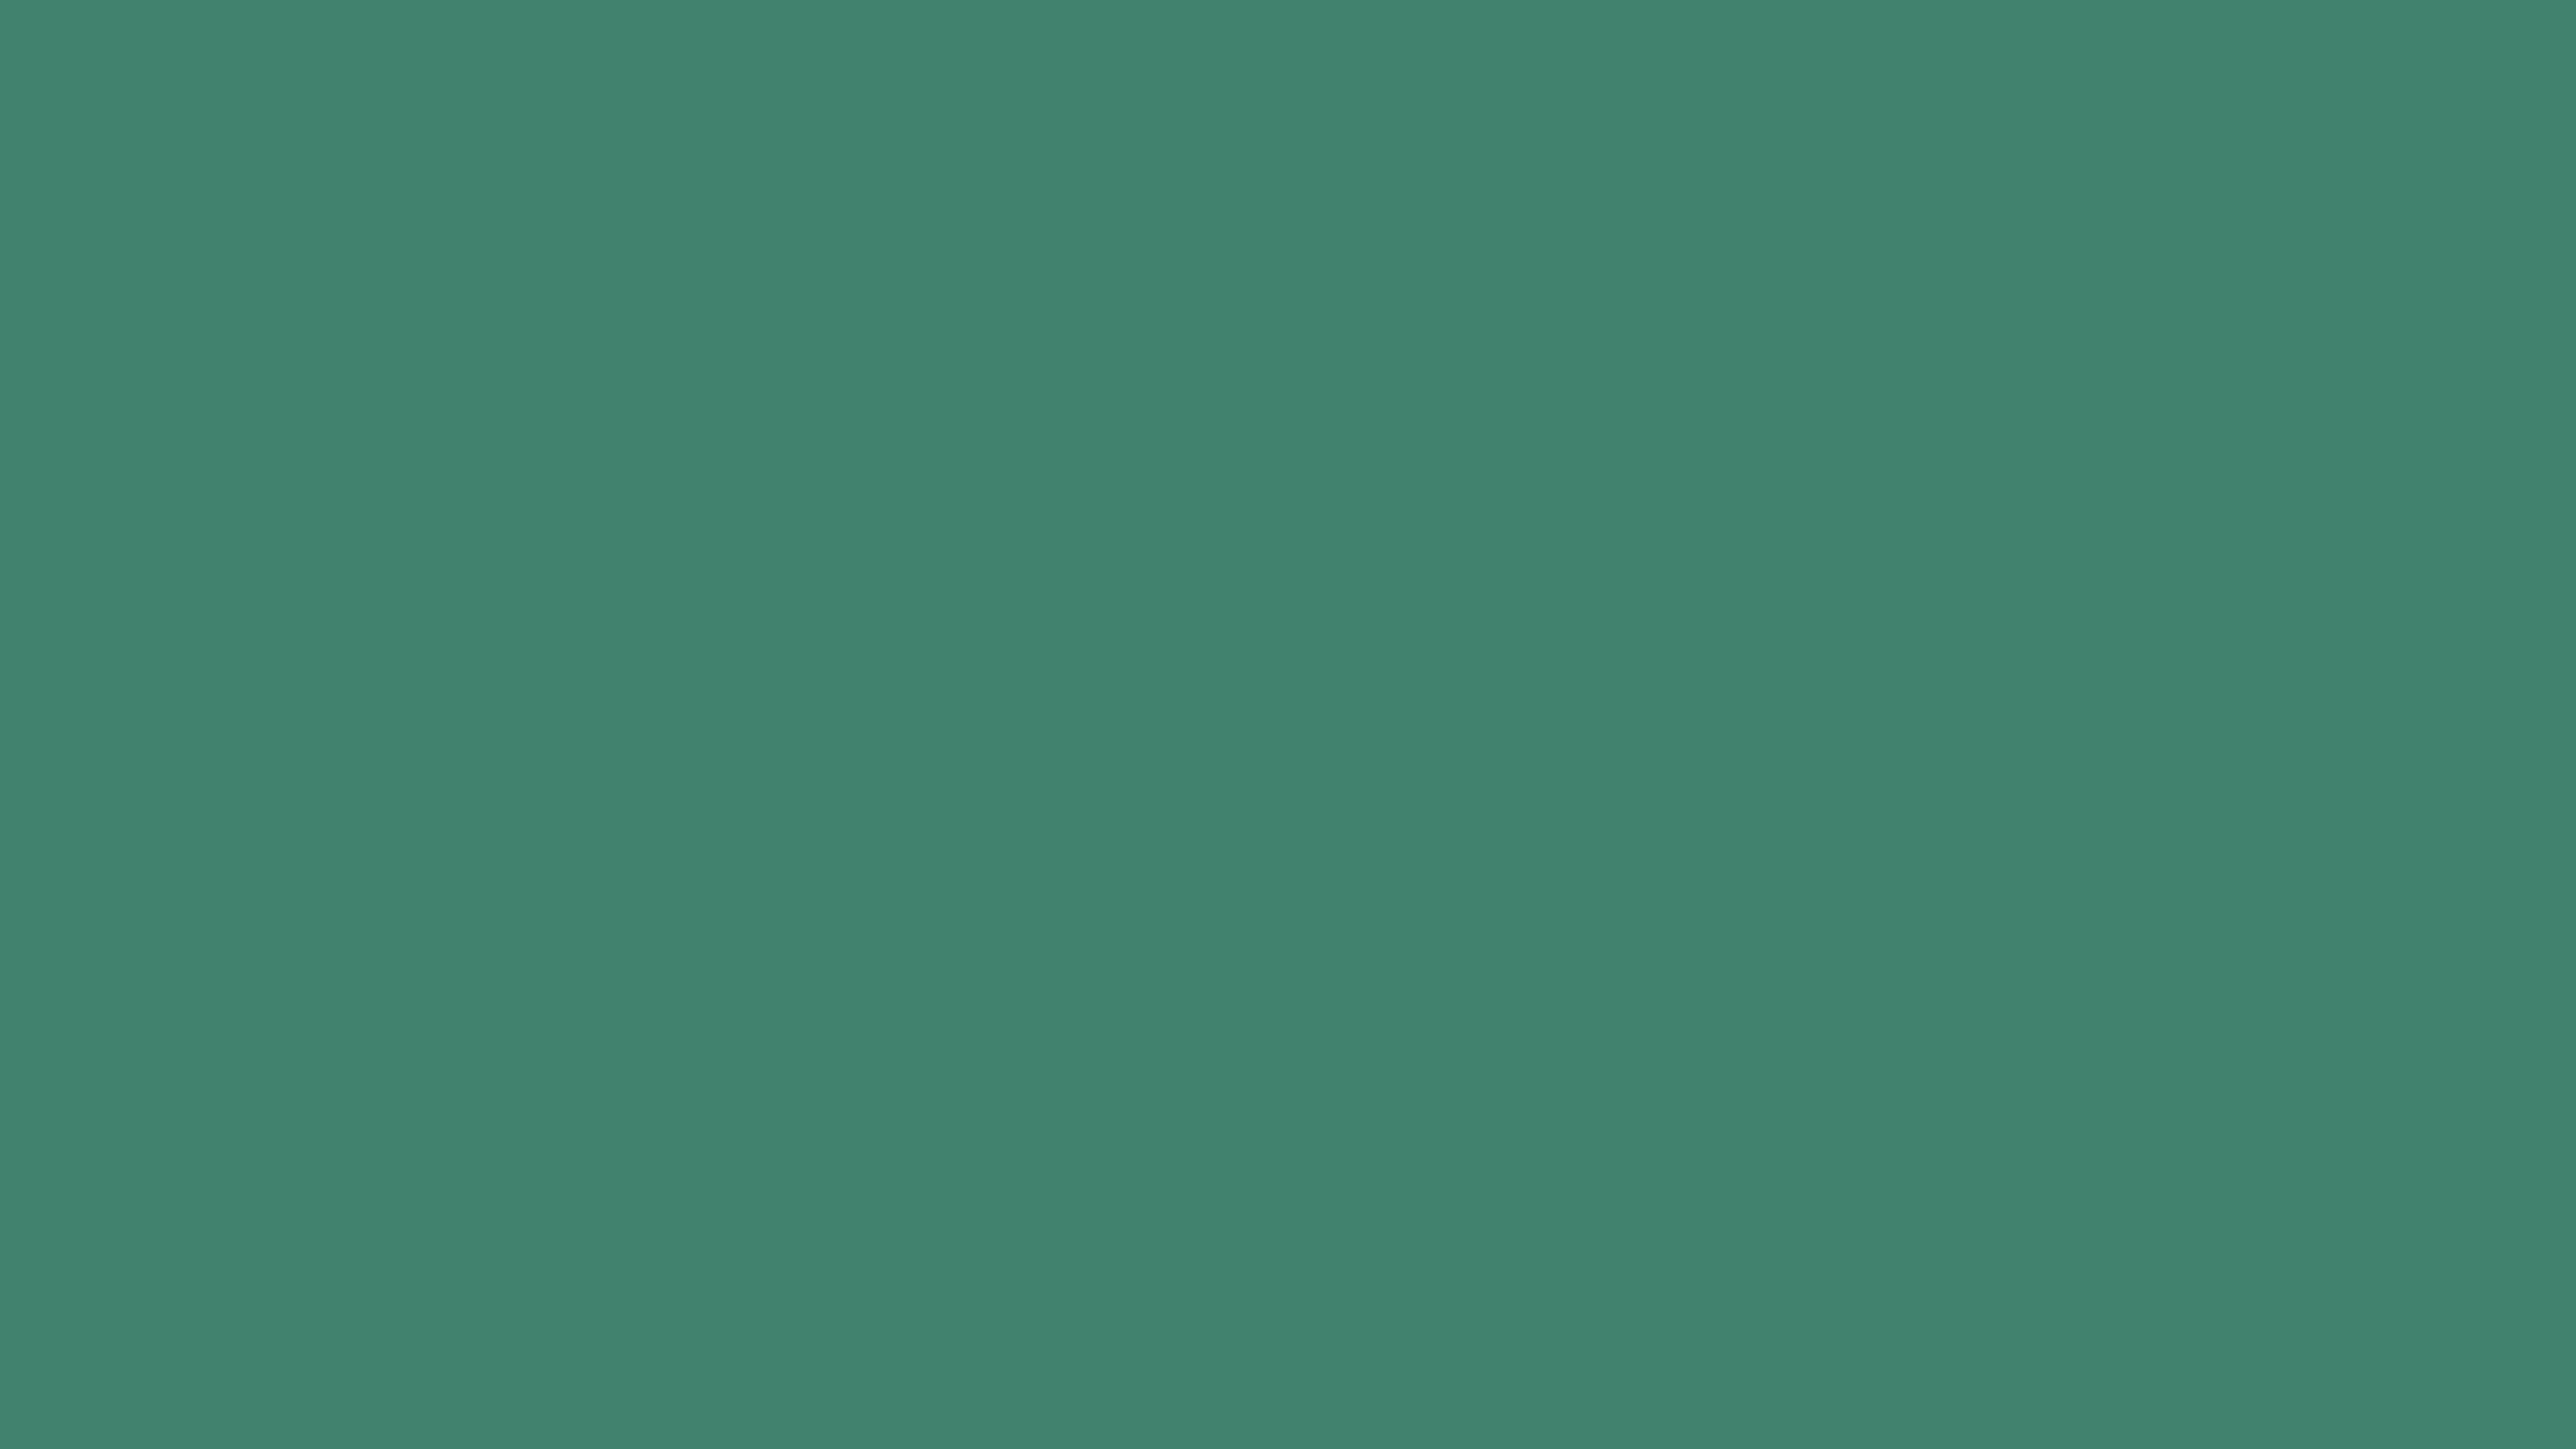 3840x2160 viridian solid color background